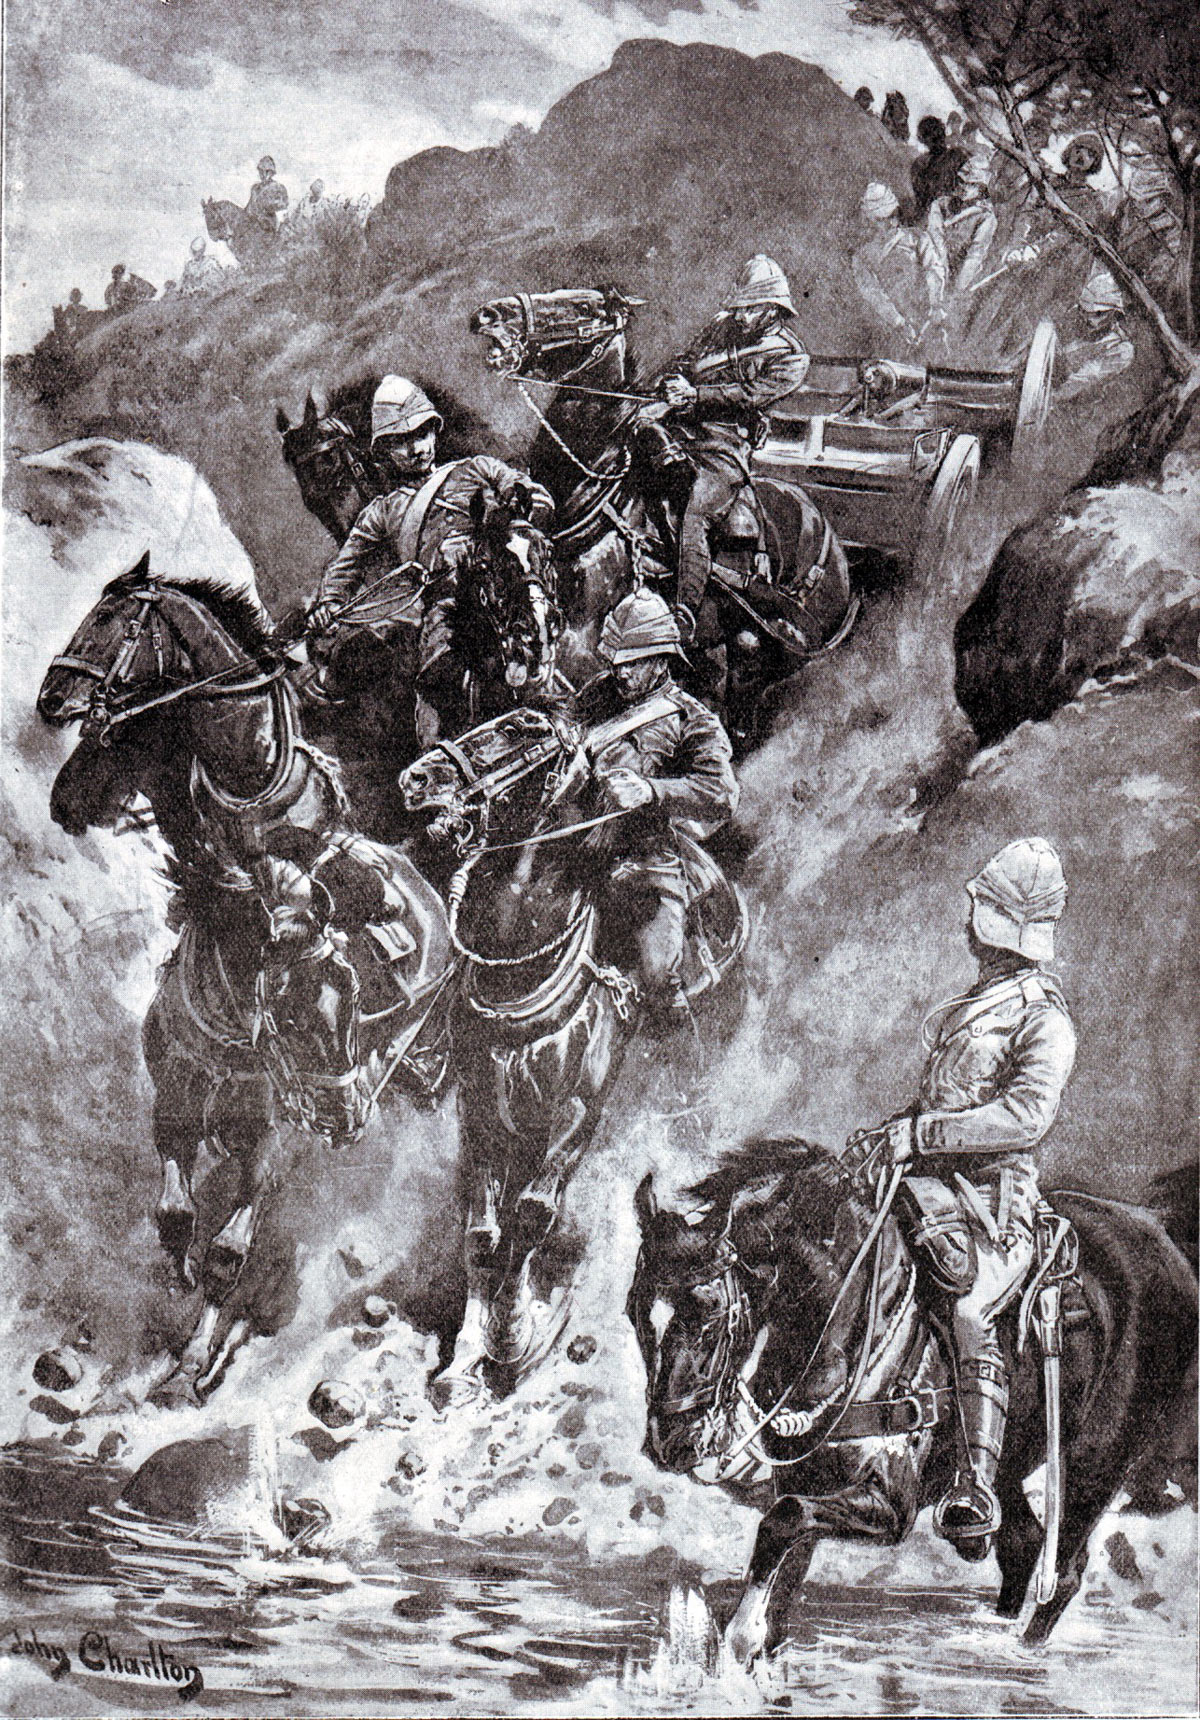 Gunners descending into a spruit during the Battle of Paardeburg on 27th February 1900 in the Great Boer War: picture by John Charlton: buy this picture